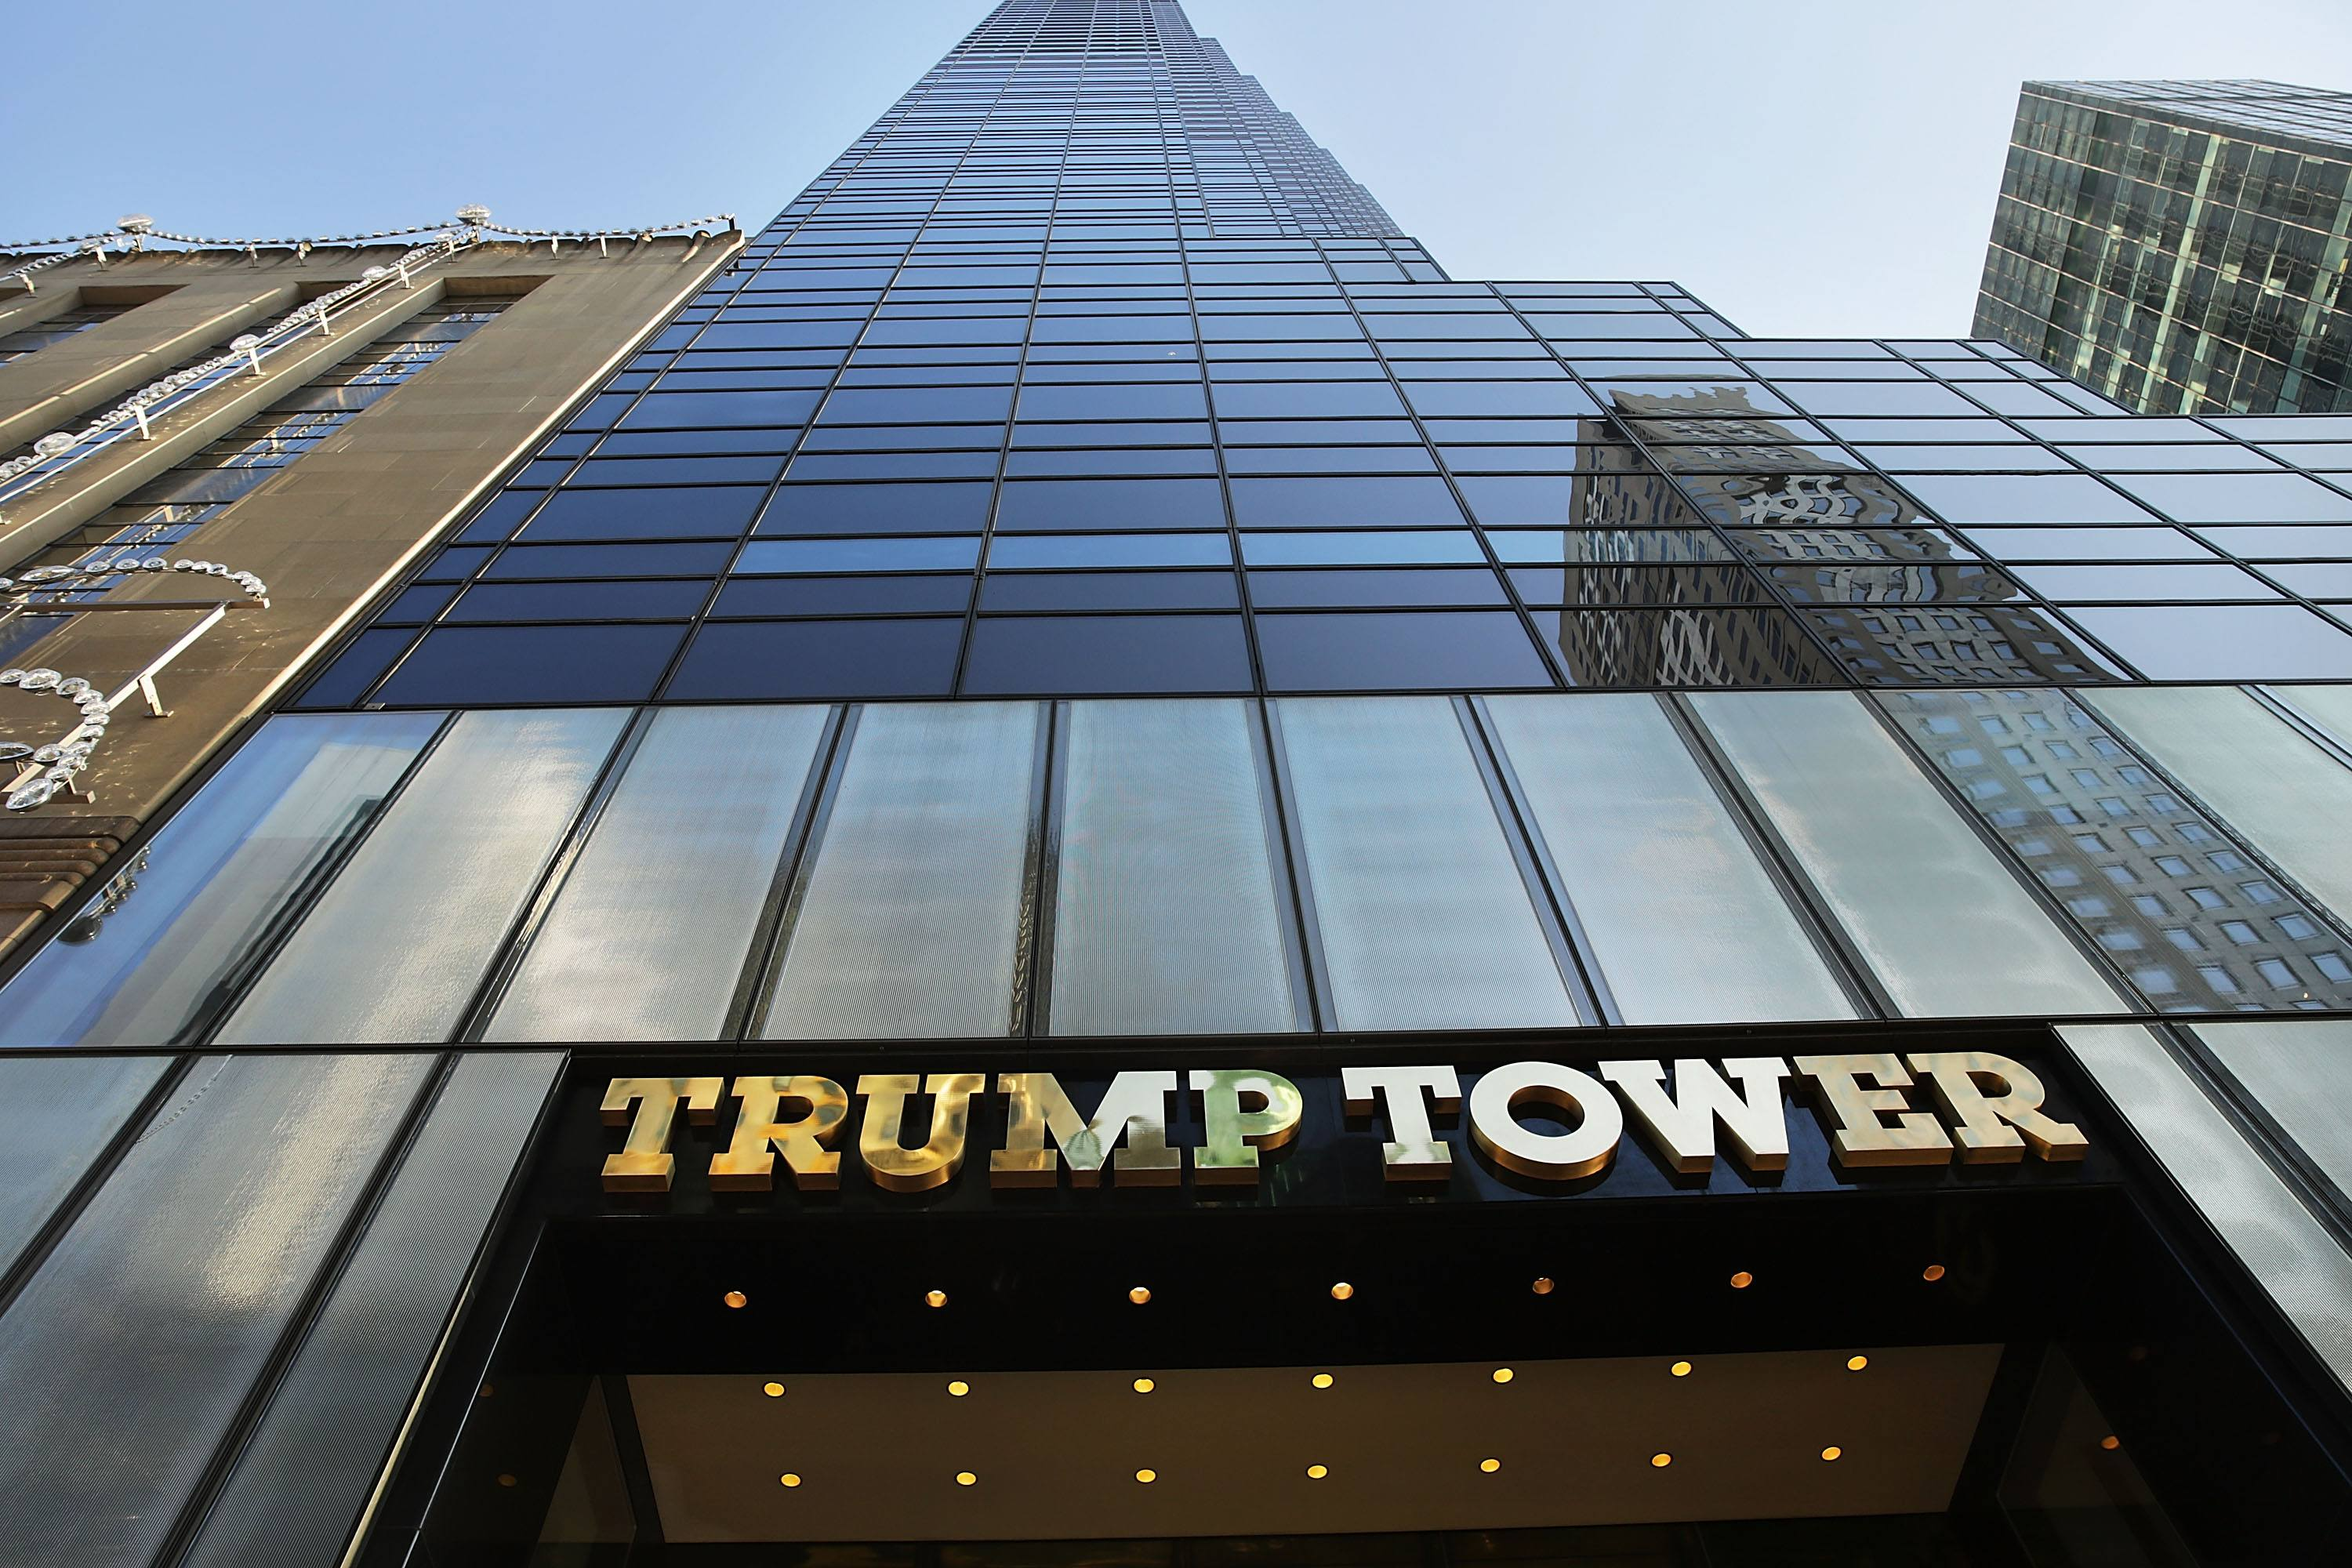 The Trump Tower in Midtown Manhattan